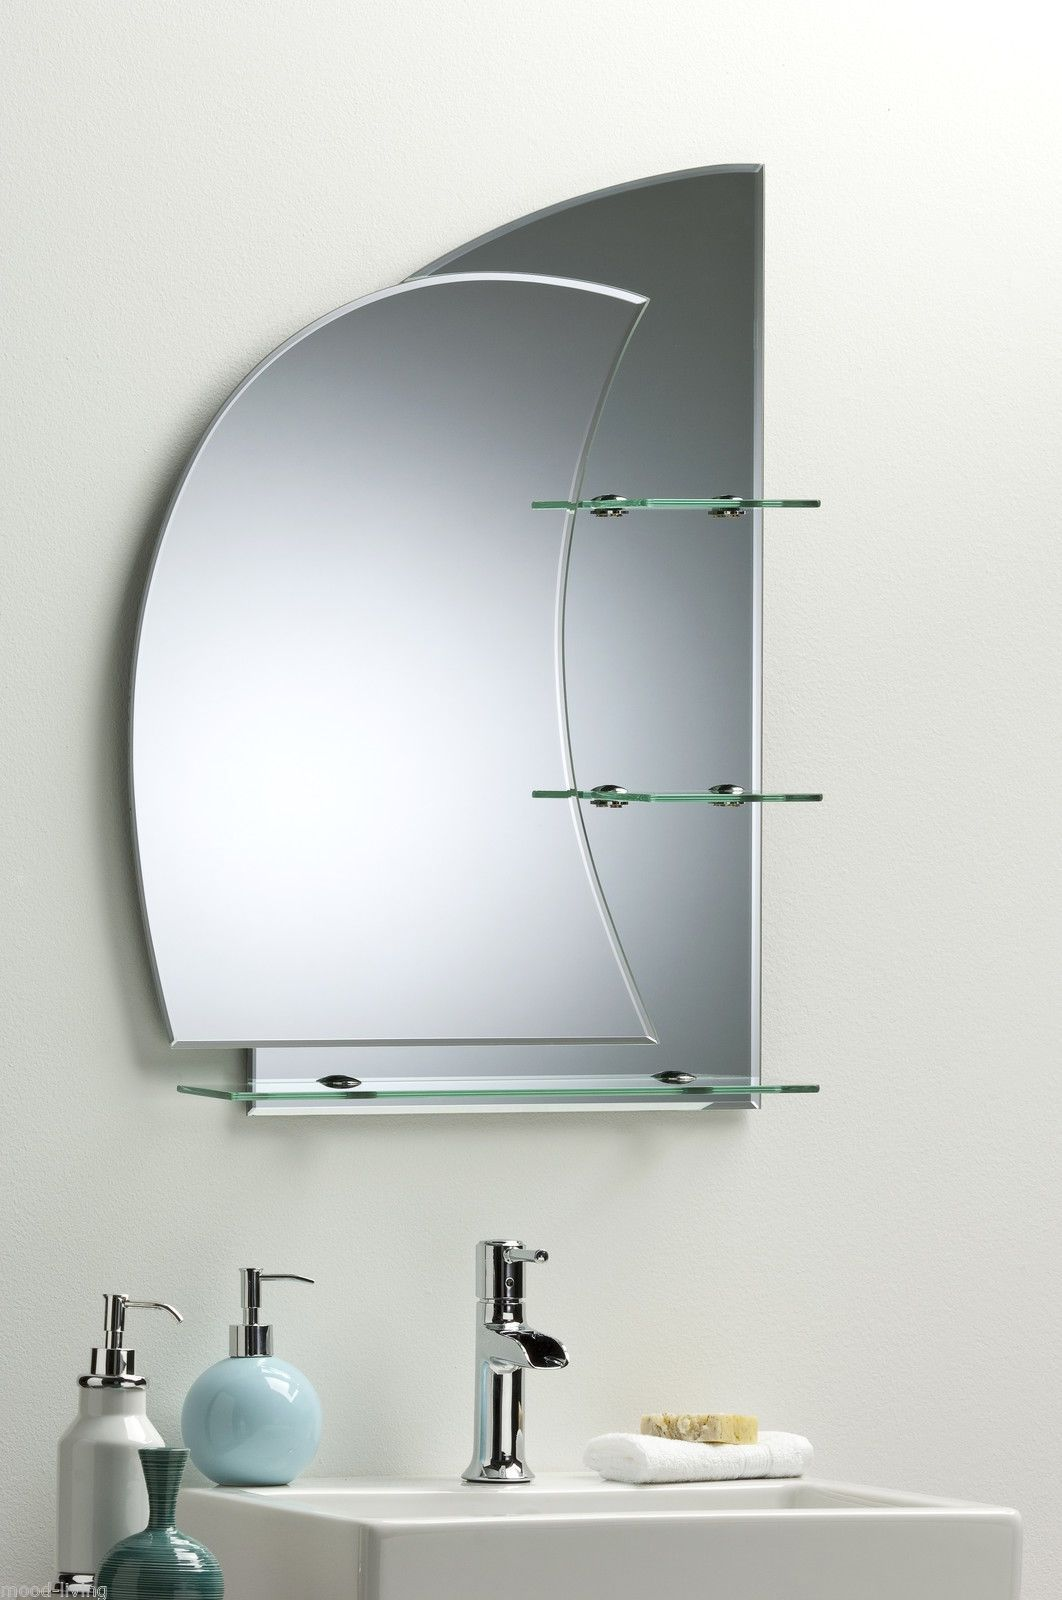 Plain Wall Mounted Mirrors | http://drrw.us | Pinterest | Wall ...